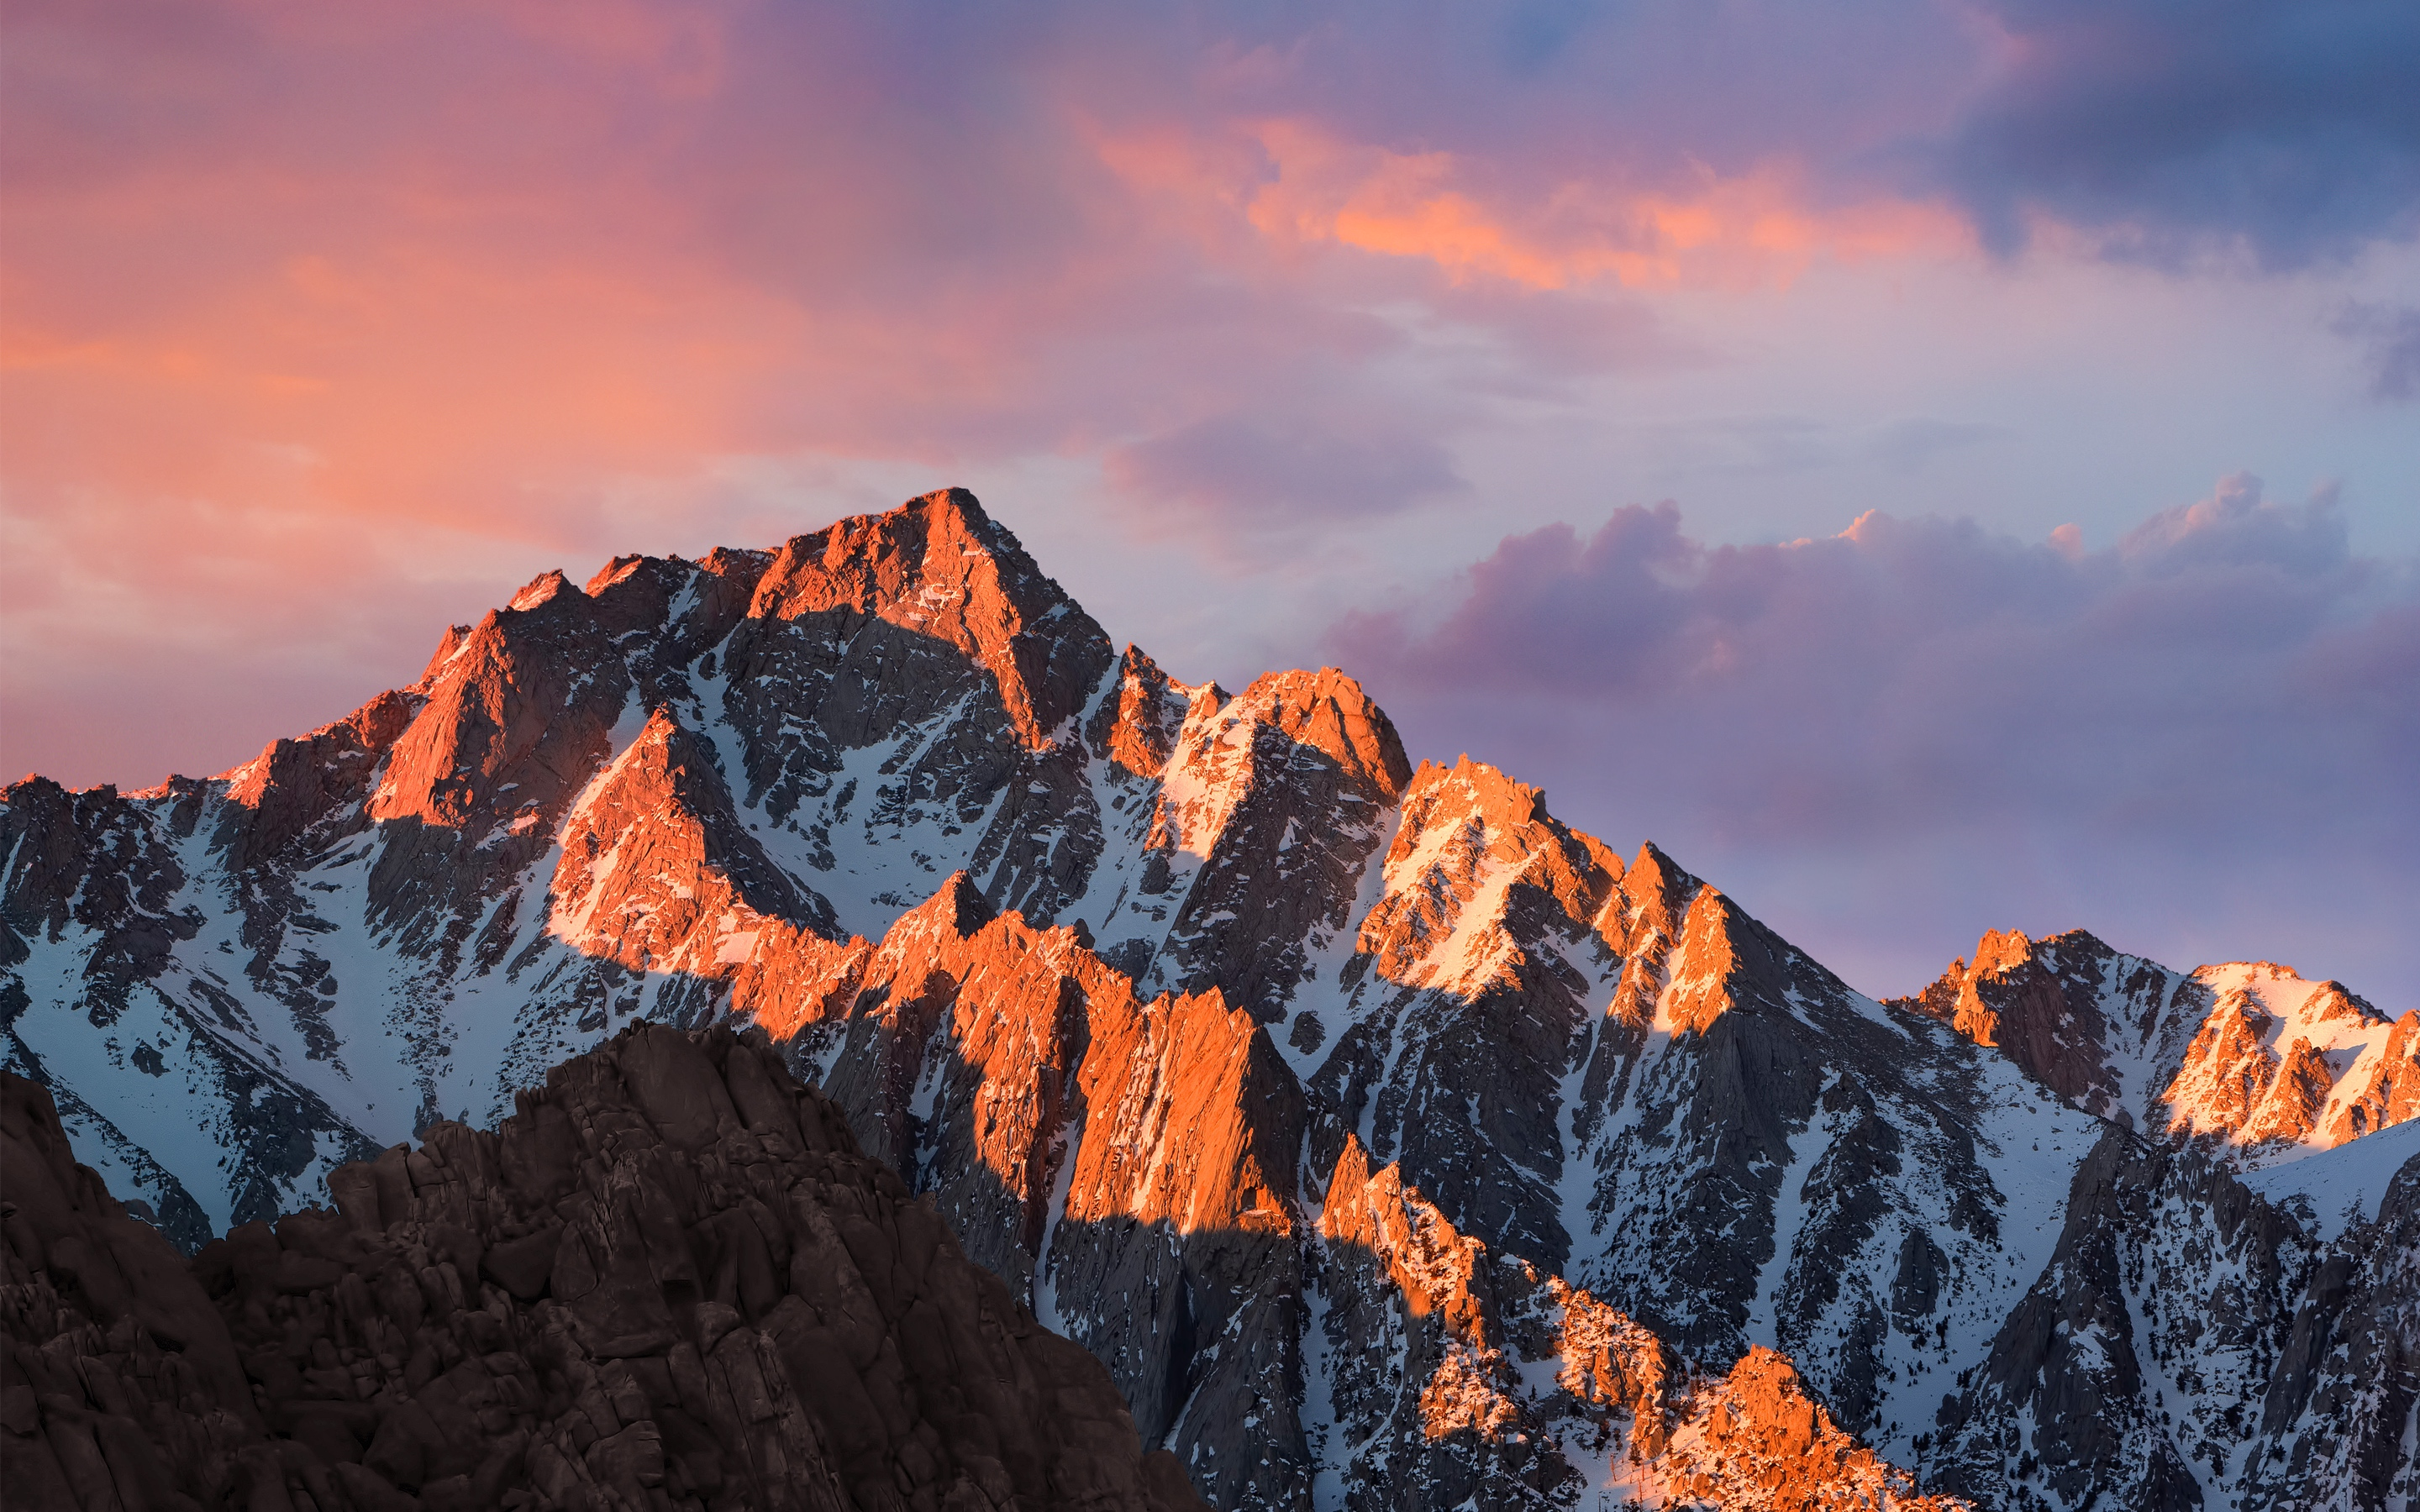 Download the new macOS Sierra wallpaper for iPhone, iPad, and desktop